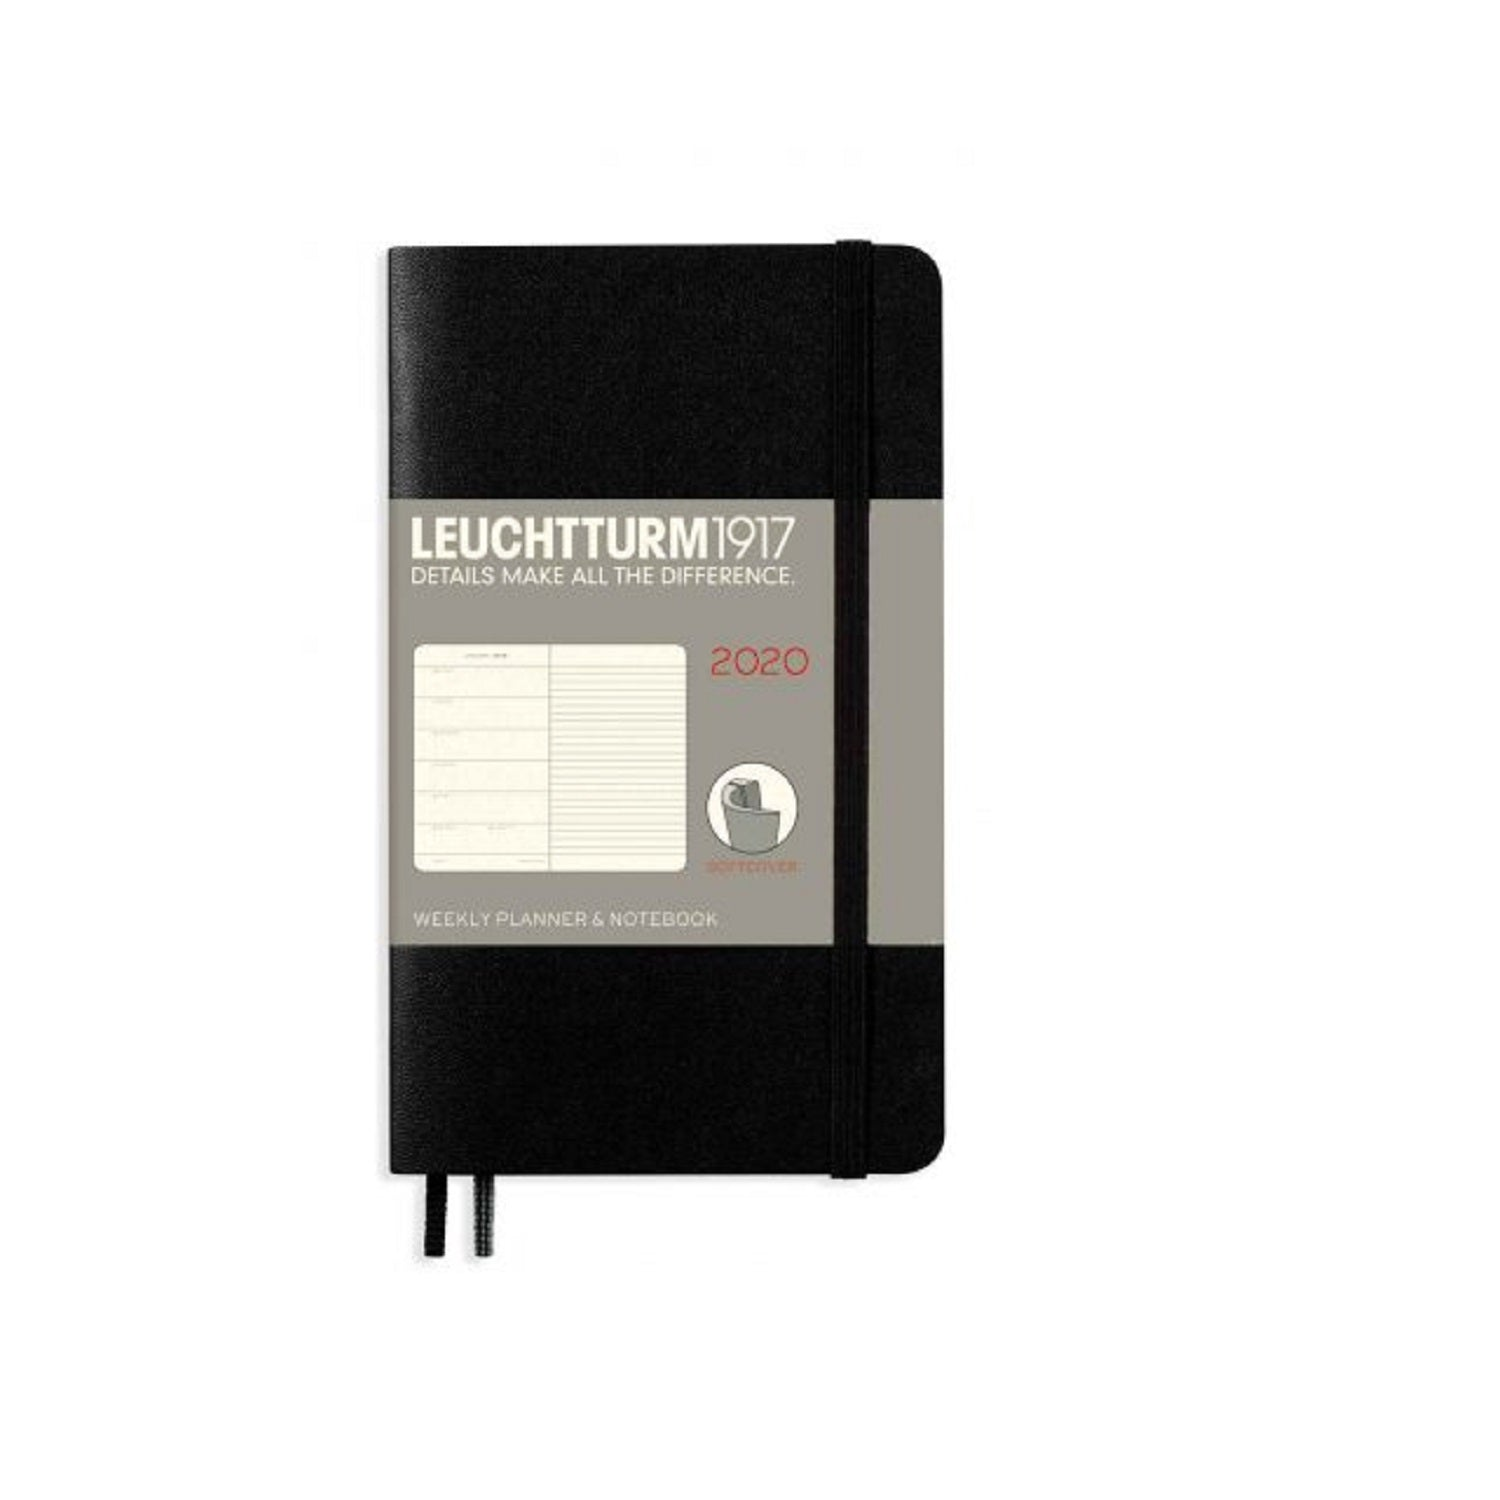 LEUCHTTURM 359961 A6 2020 SOFTCOVER WEEKLY PLANNER AND NOTEBOOK BLACK